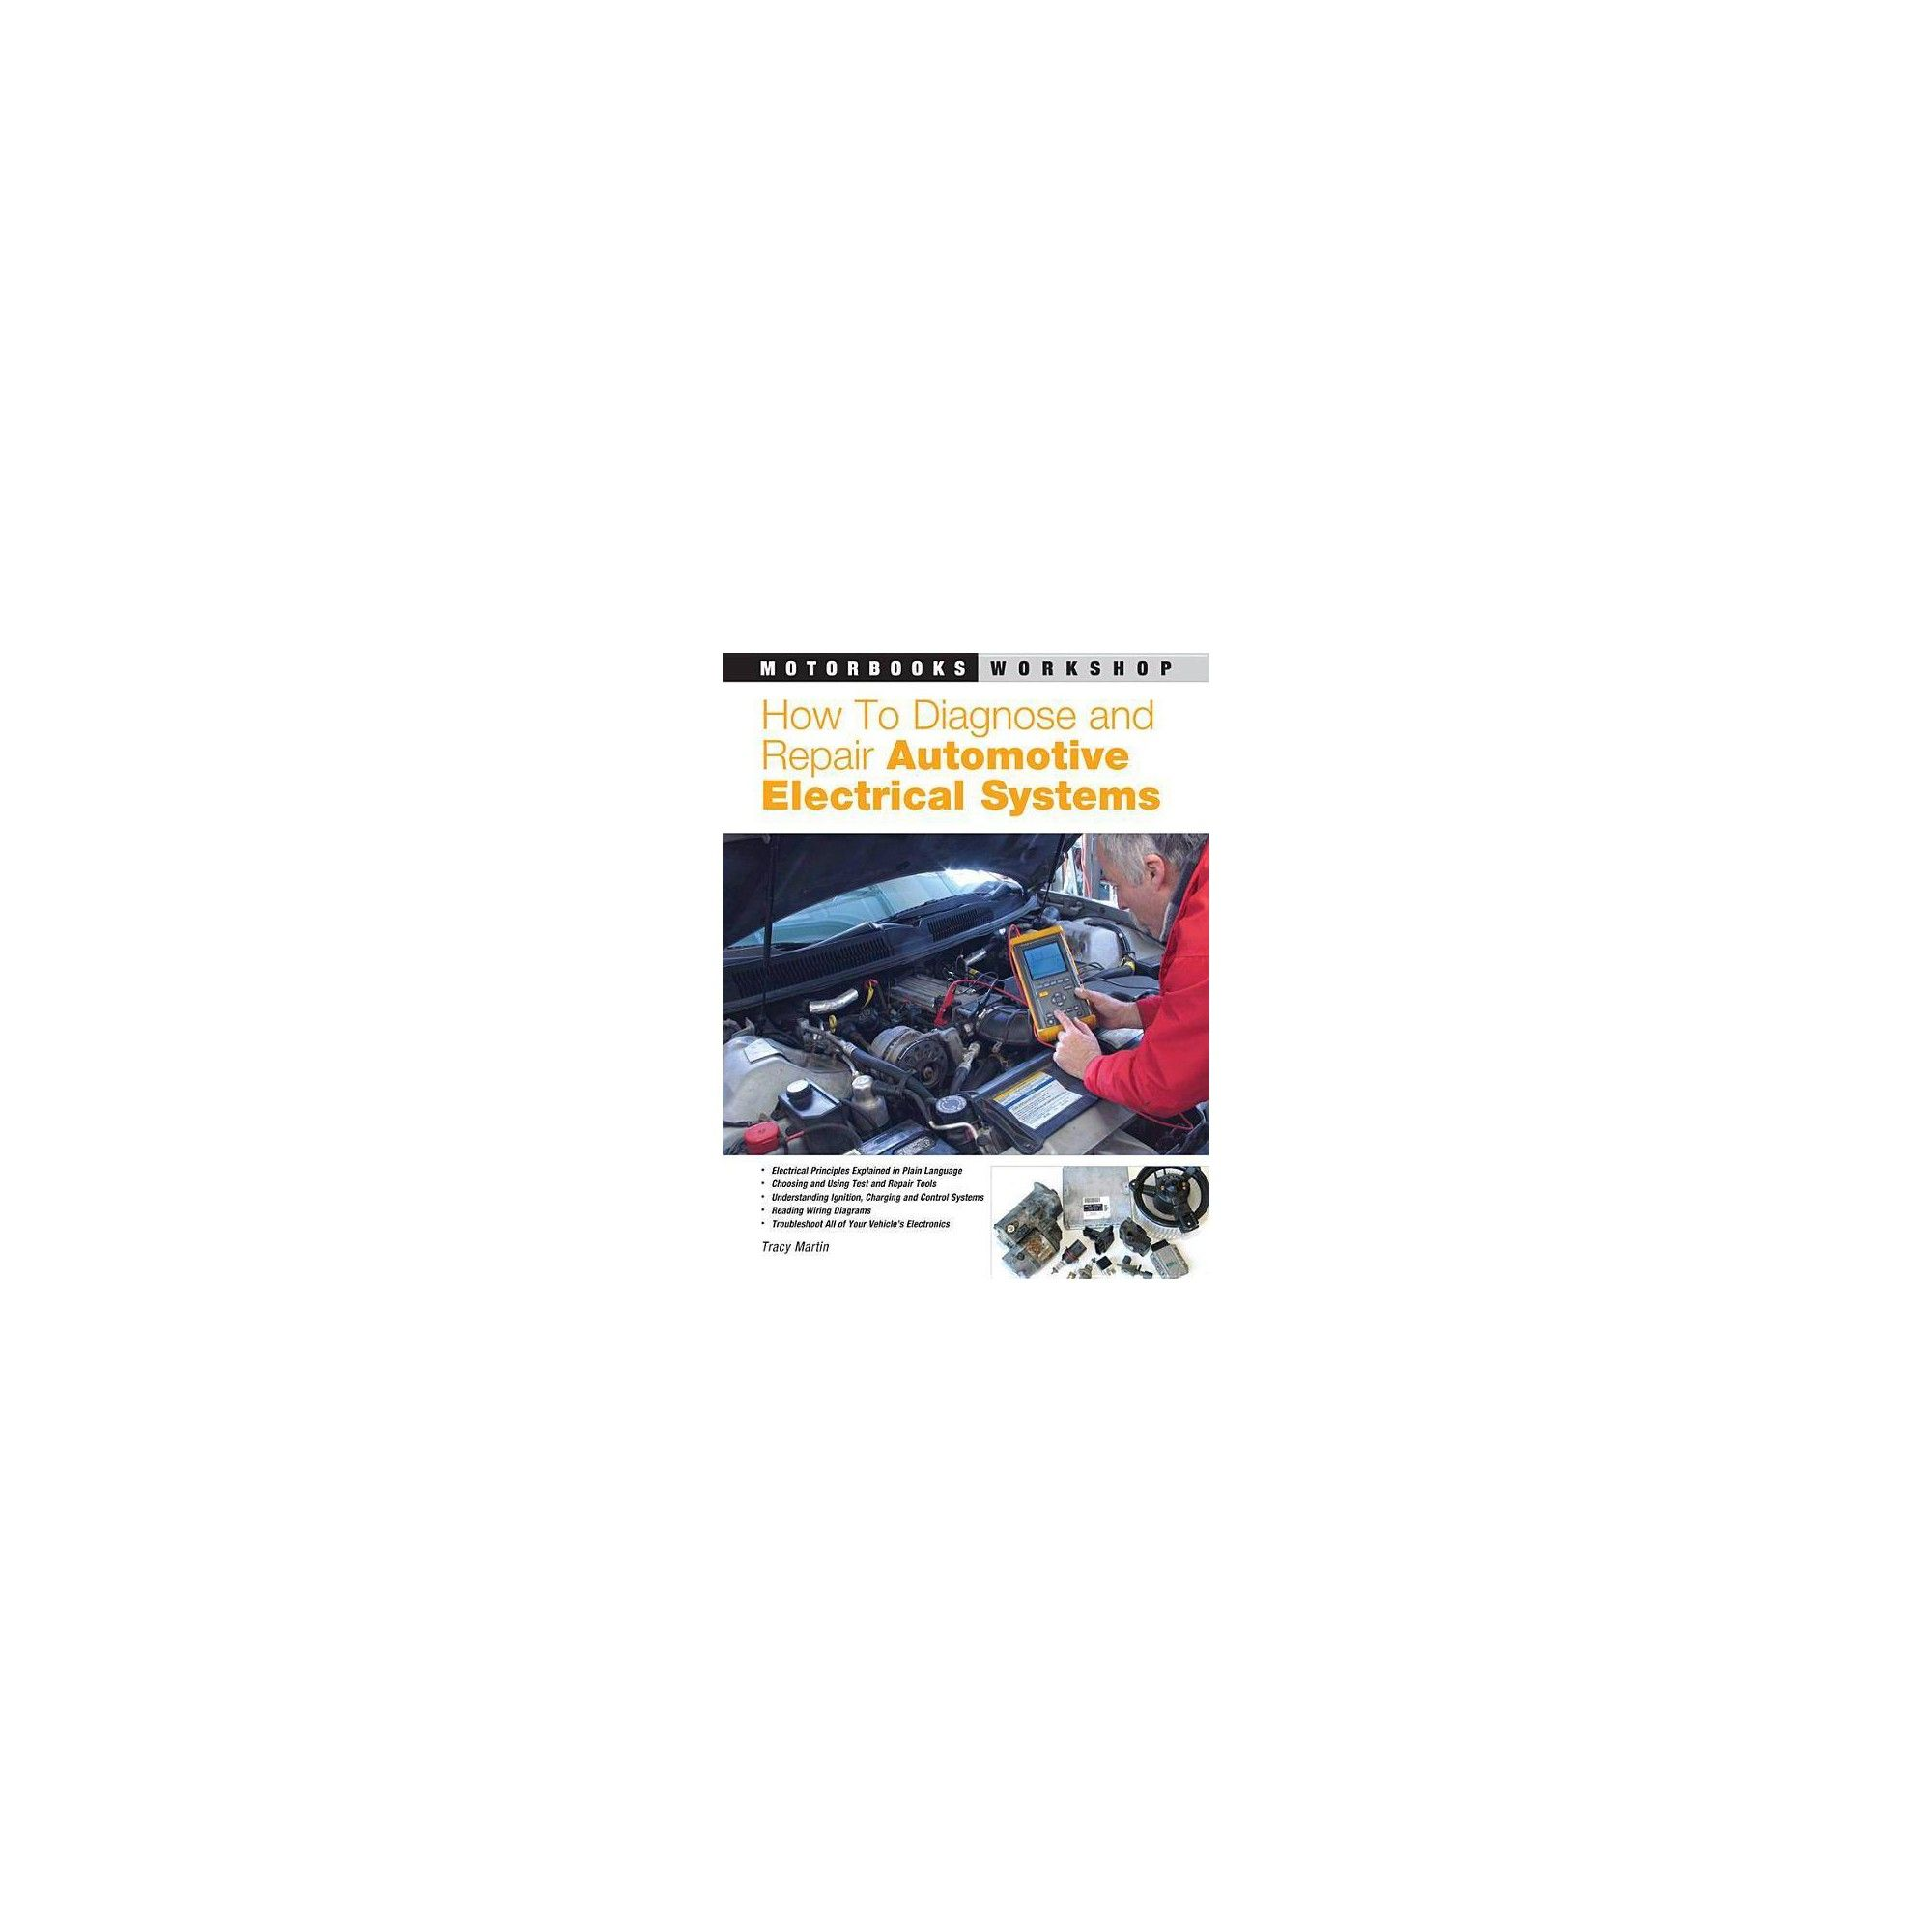 medium resolution of how to diagnose and repair automotive electrical systems motorbooks workshop by tracy martin